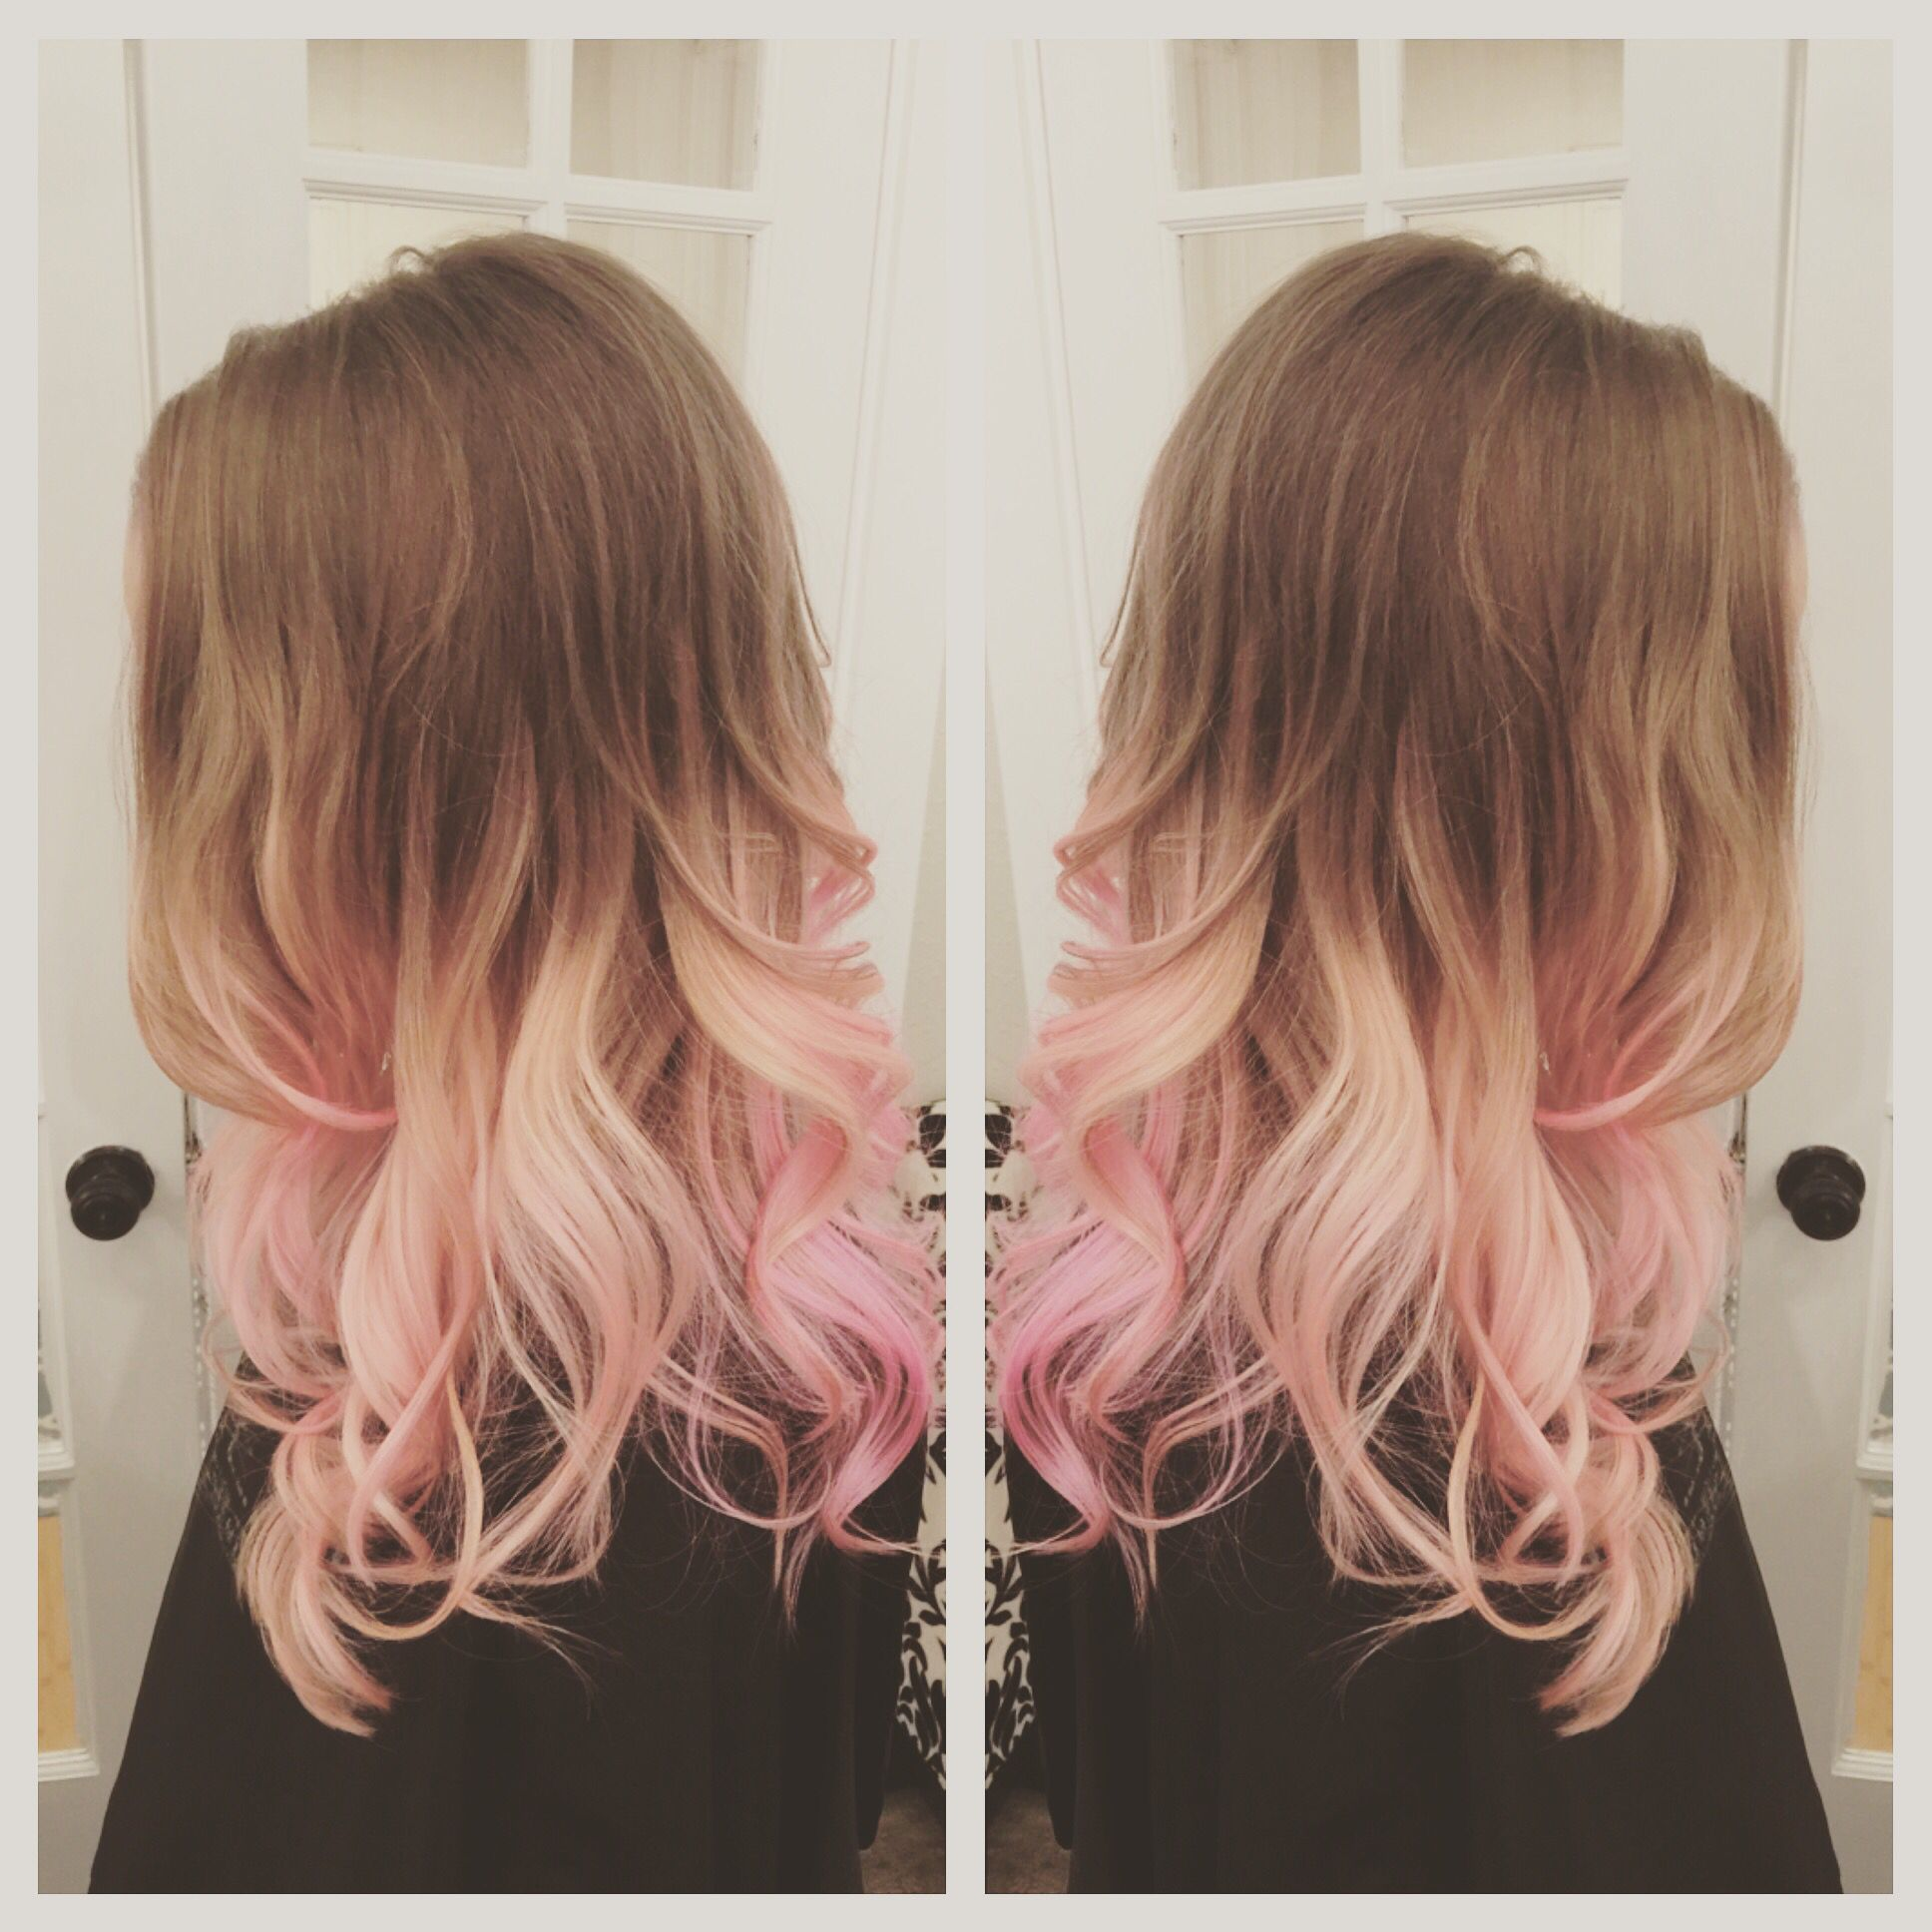 Pink hair balayage ombr hair before afters pinterest pink hair balayage ombr solutioingenieria Gallery